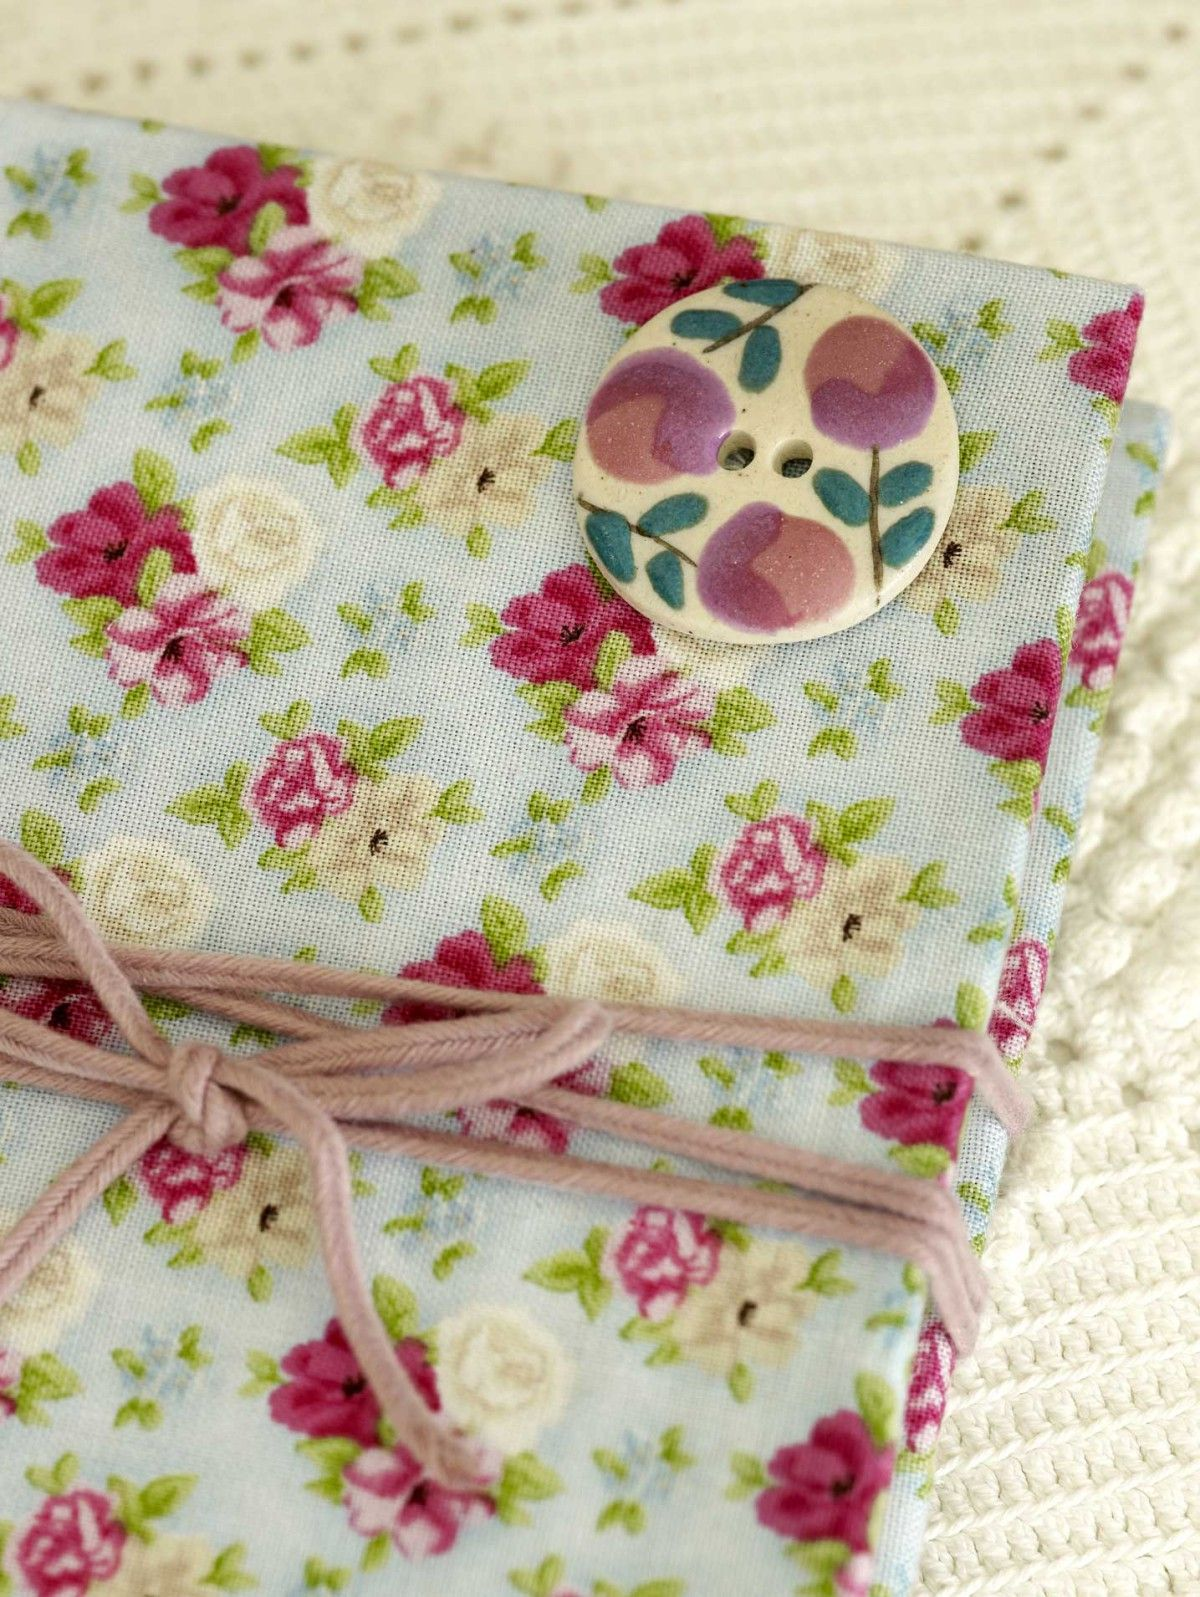 We've all seen those smart, covered notebooks in the shops – The good news is that these lovely fabric covered notebooks are really easy to make yourself.